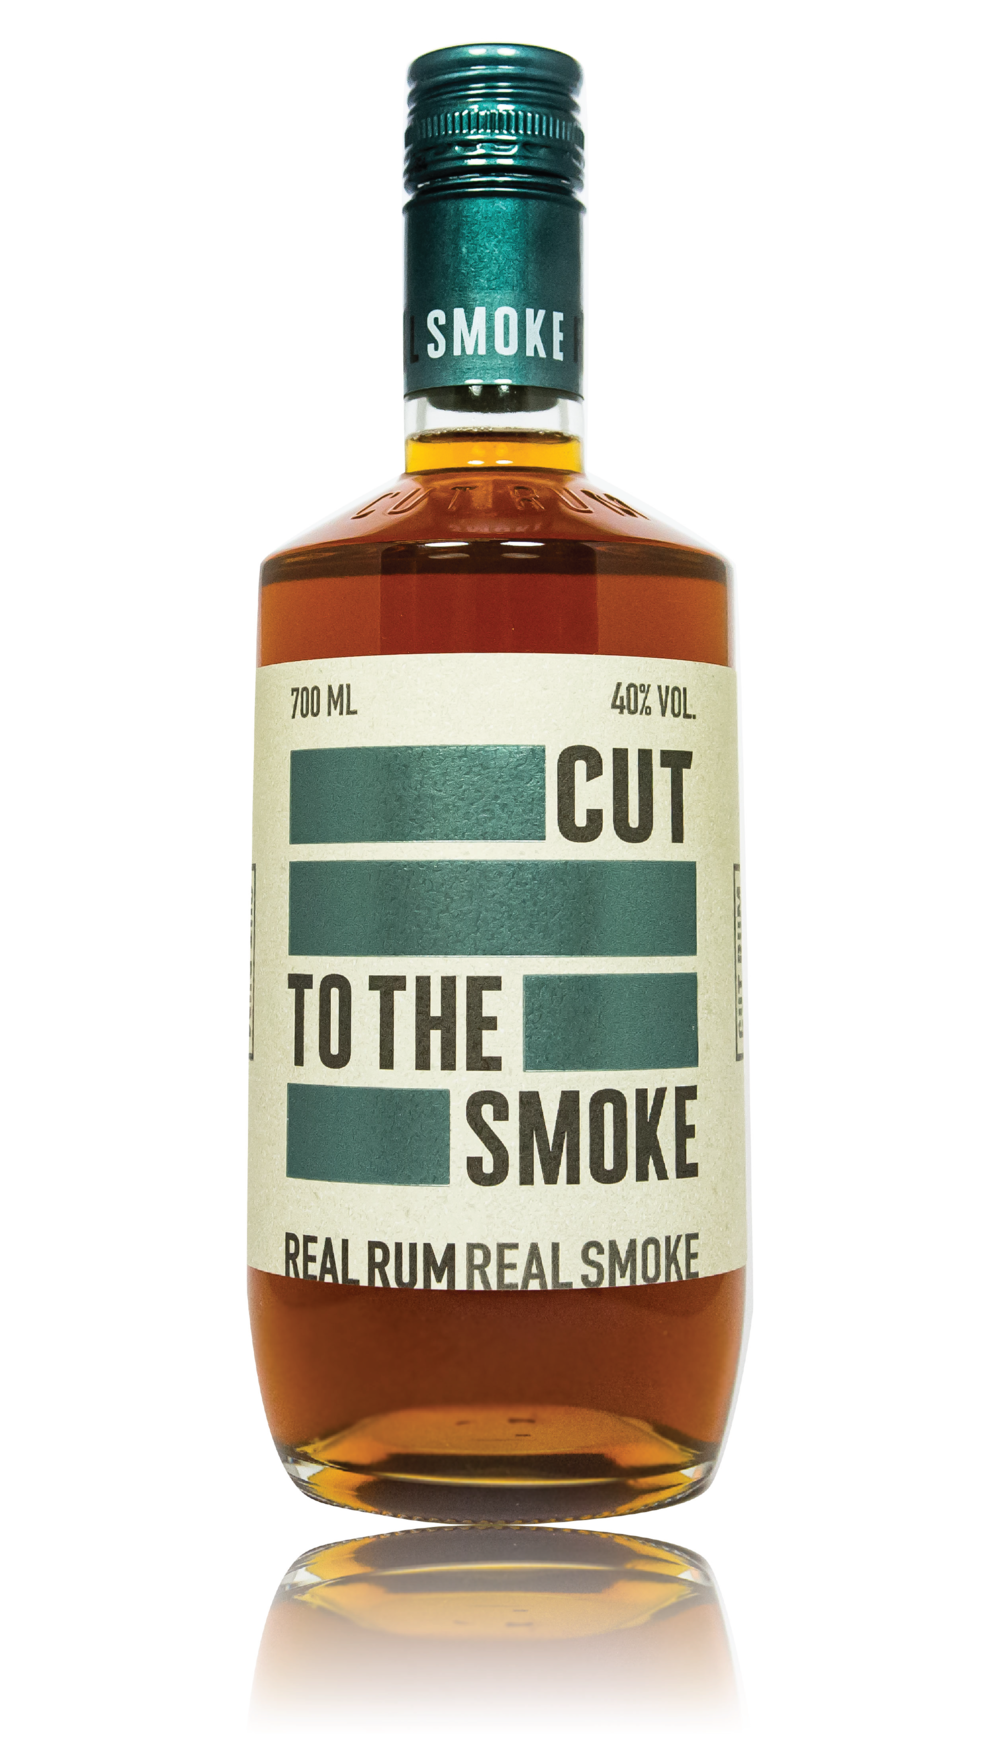 CUT SMOKED RUM - 40% ABVTHE FIRST SMOKED RUM IN THE UK. INFUSED WITH ARABICA COFFEE BEANS,SMOKED WITH BURNT WOOD CHIPS AND LEFT TO REST IN OAK BARRELS. THIS RUM IS ONE OF A KINDON THE NOSECOFFEE █████ COCOA NIB ████ █████ OAKED VANILLA ███ PIPE TOBACCO ████████ ON THE TASTE█████ BROWN SUGAR ██████ LEATHER ██████ CHARRED WOOD ███████ MATCHSTICK SMOKE